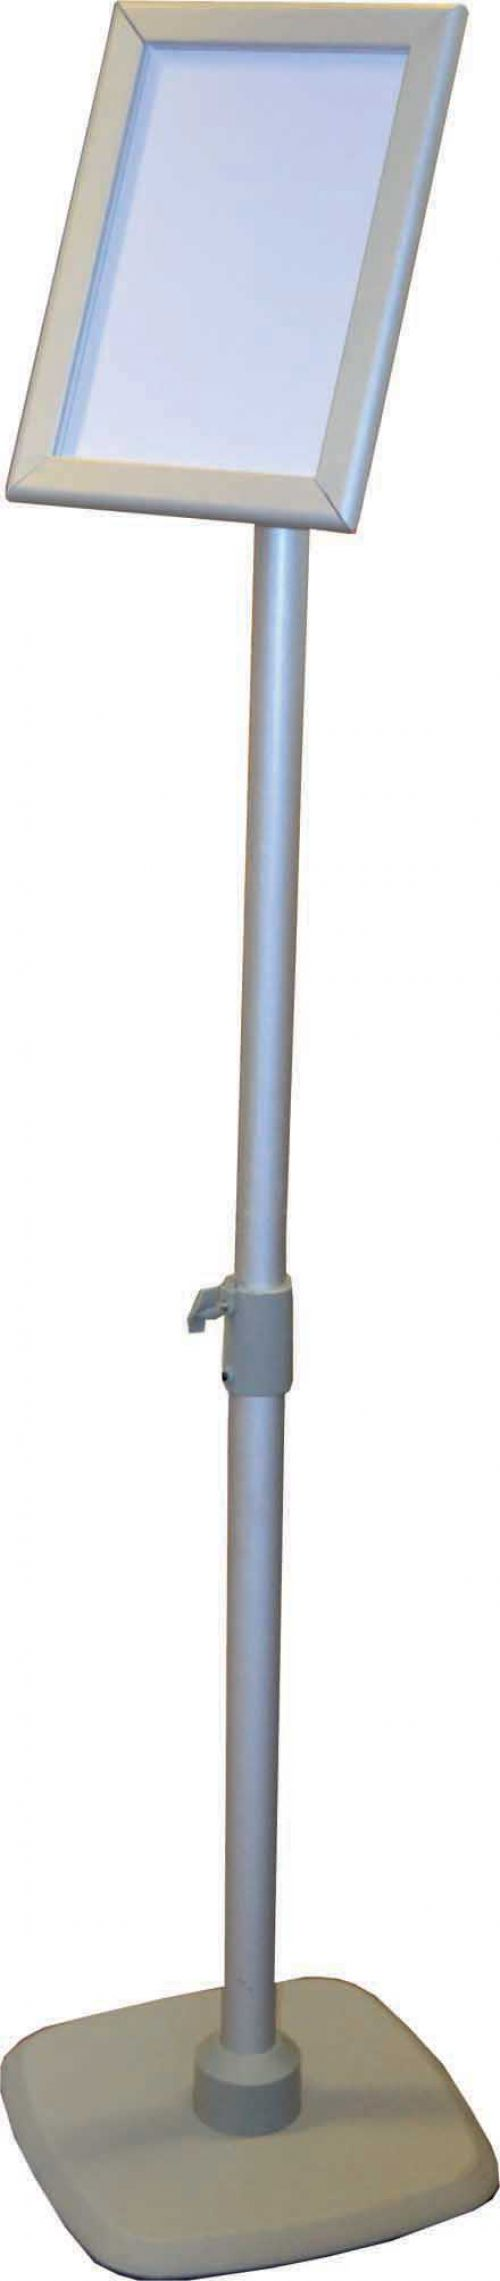 Freestanding A3 display frame stand